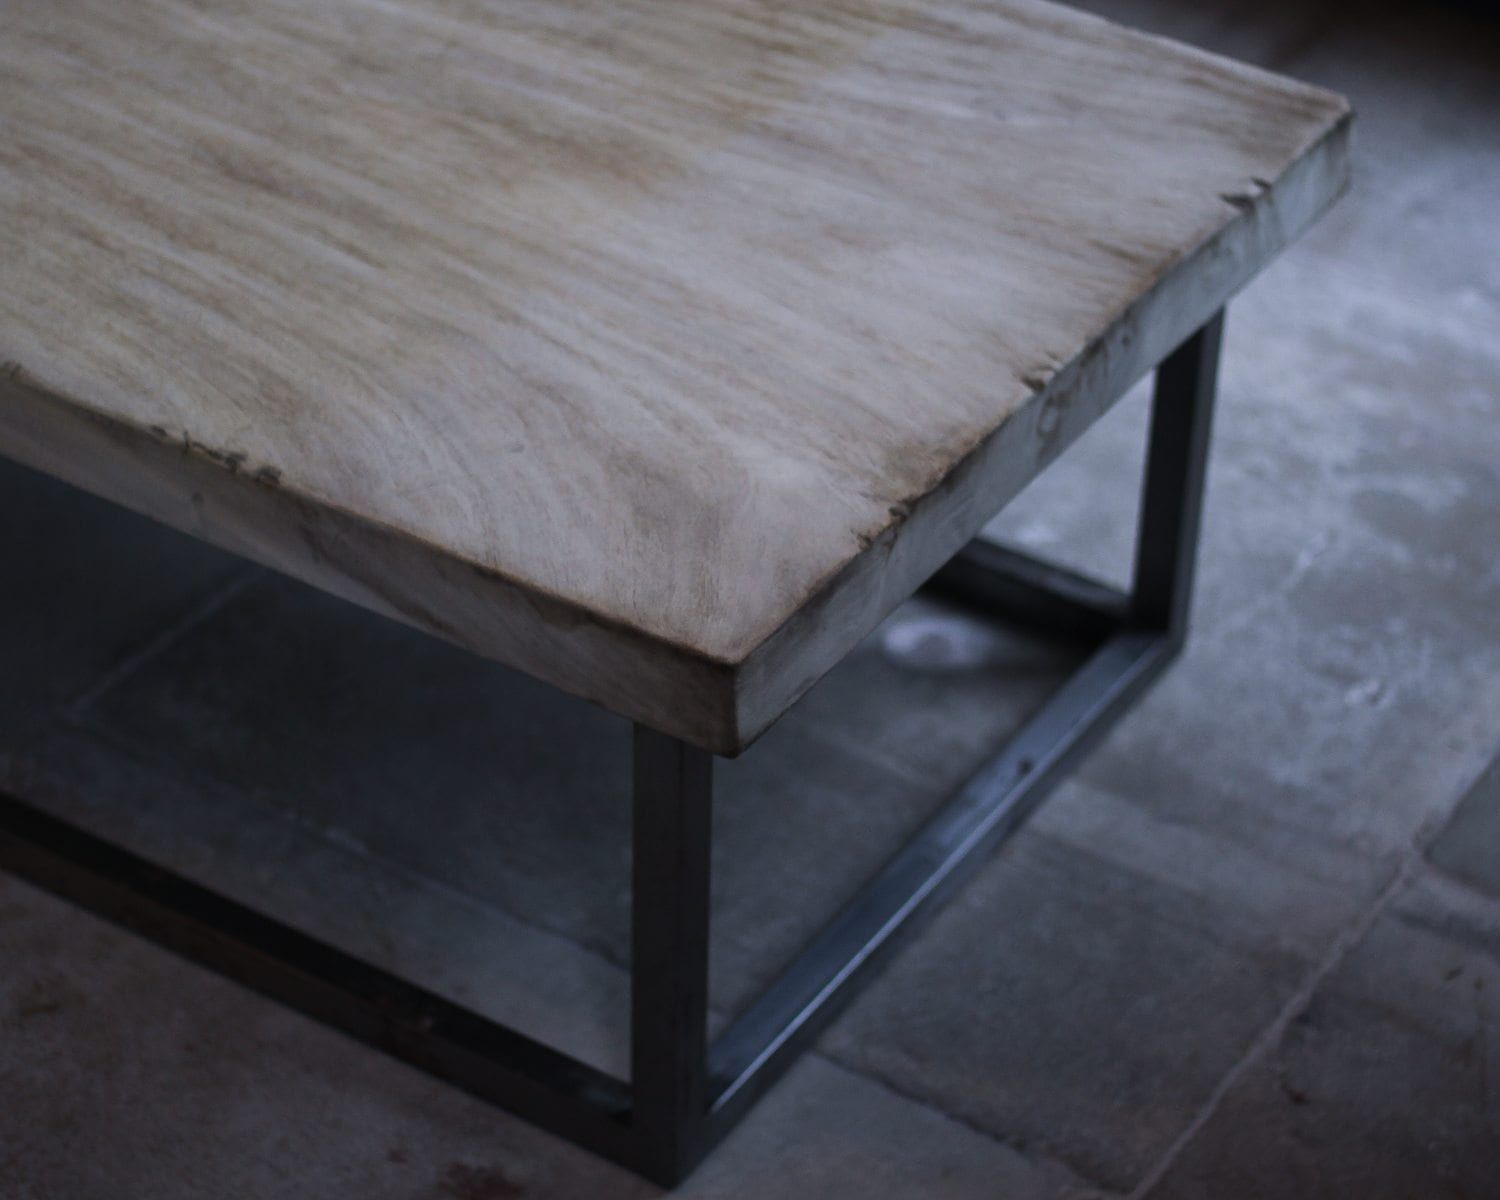 suar wood and metal coffee table willow lifestyle on stunning wooden metal coffee table id=74129